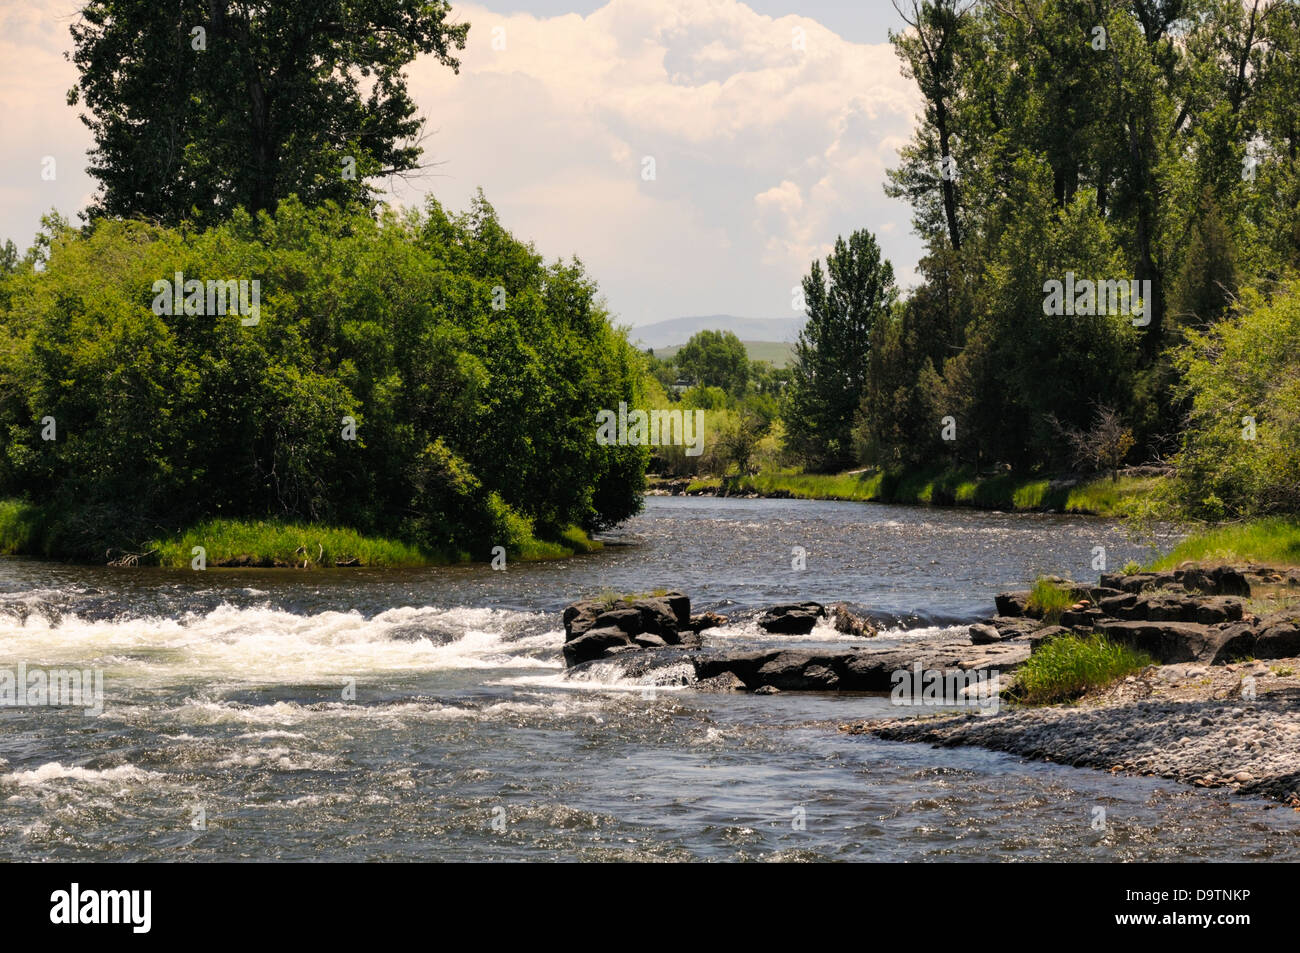 River Greenery and Rocky Riverbank - Stock Image